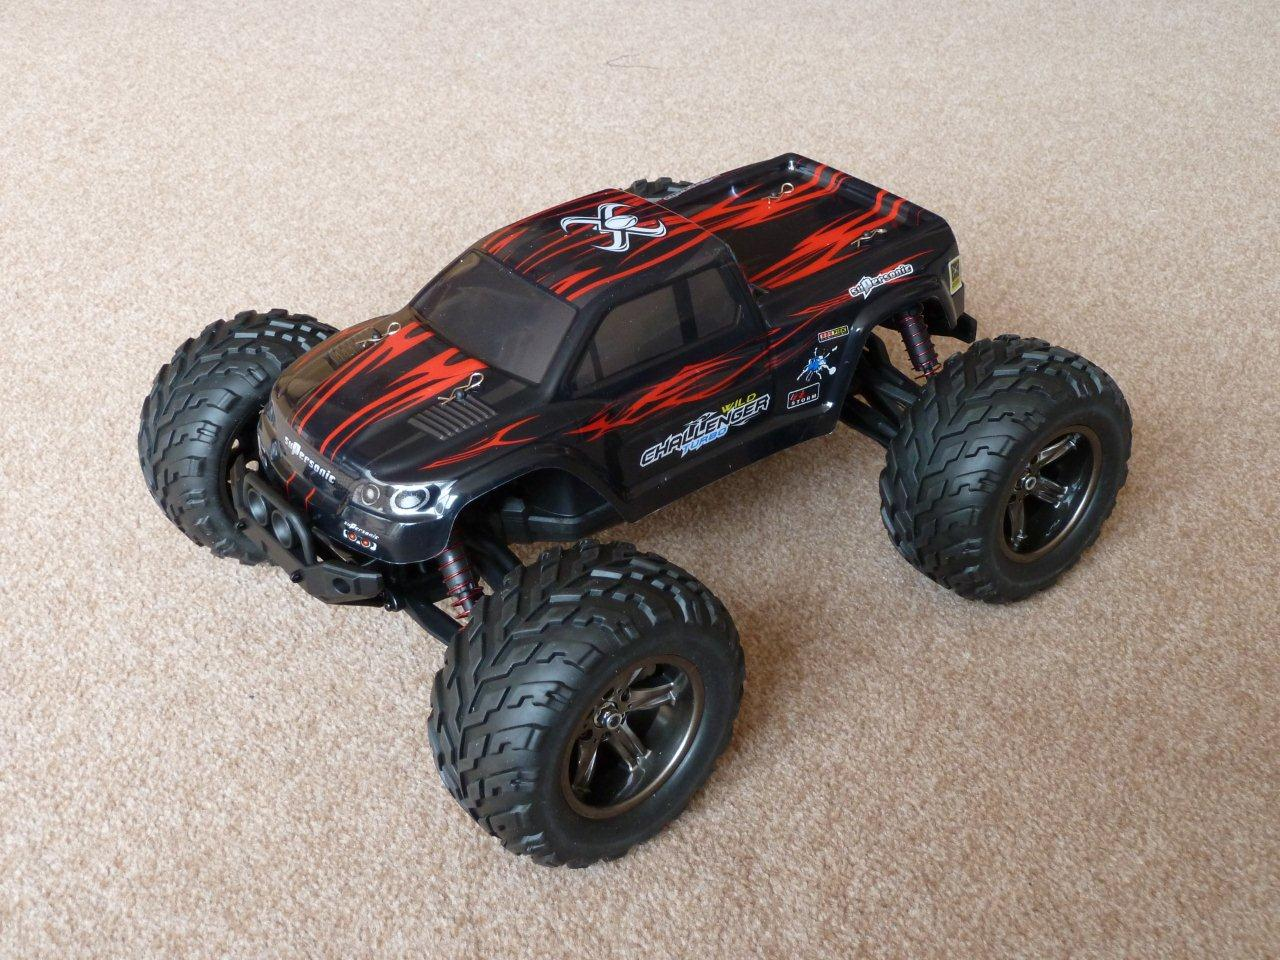 Mini-Review Foxx S911 1/12 2WD Brushed Monster Truck - RC Groups